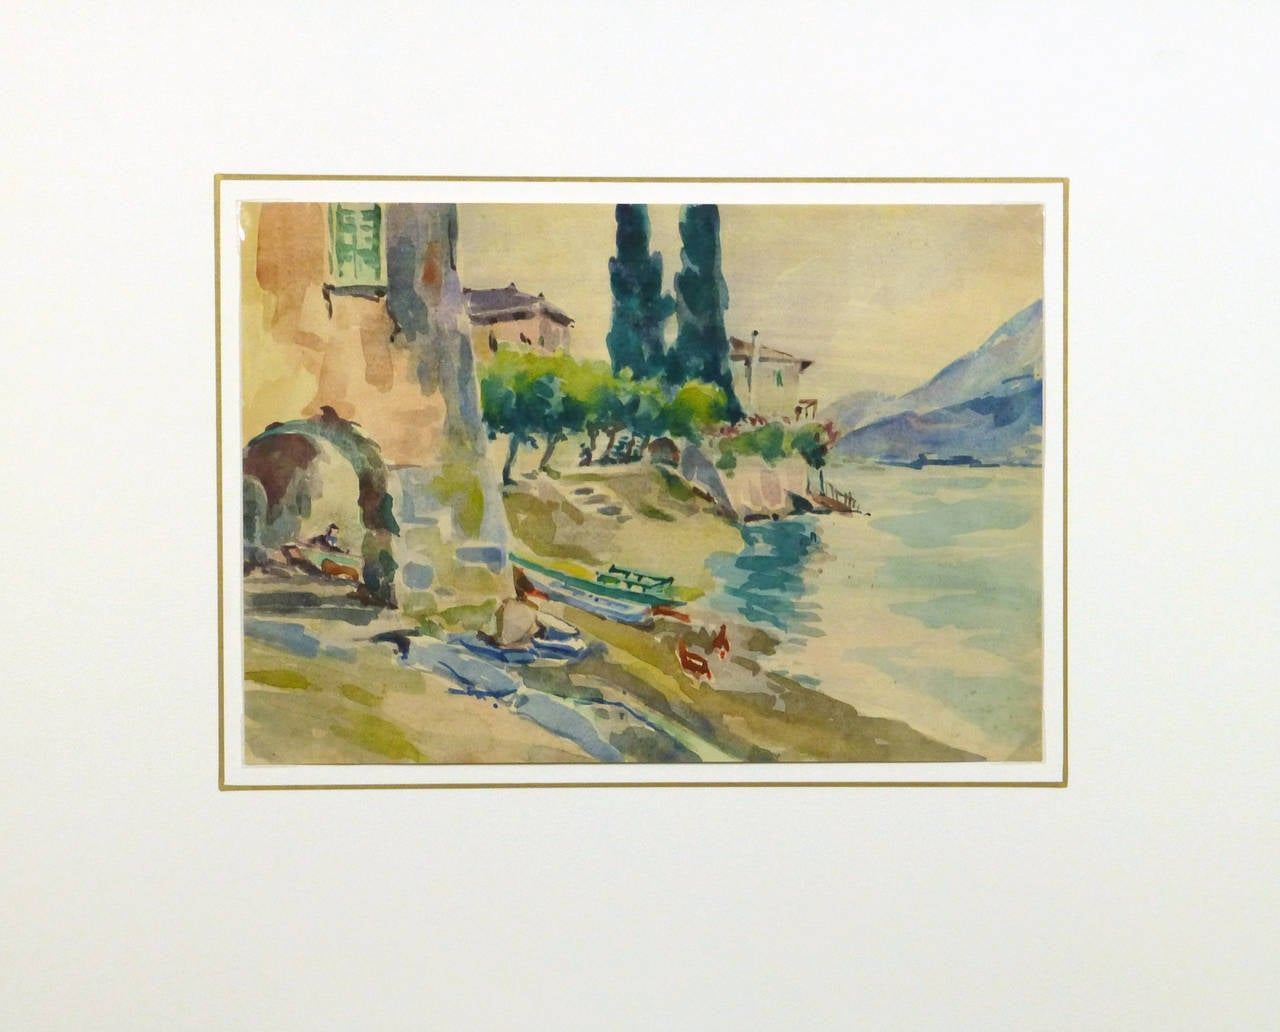 Furniture Stores In St Augustine Fl Roger Tochon - Vintage French Landscape - The Water's Edge ...